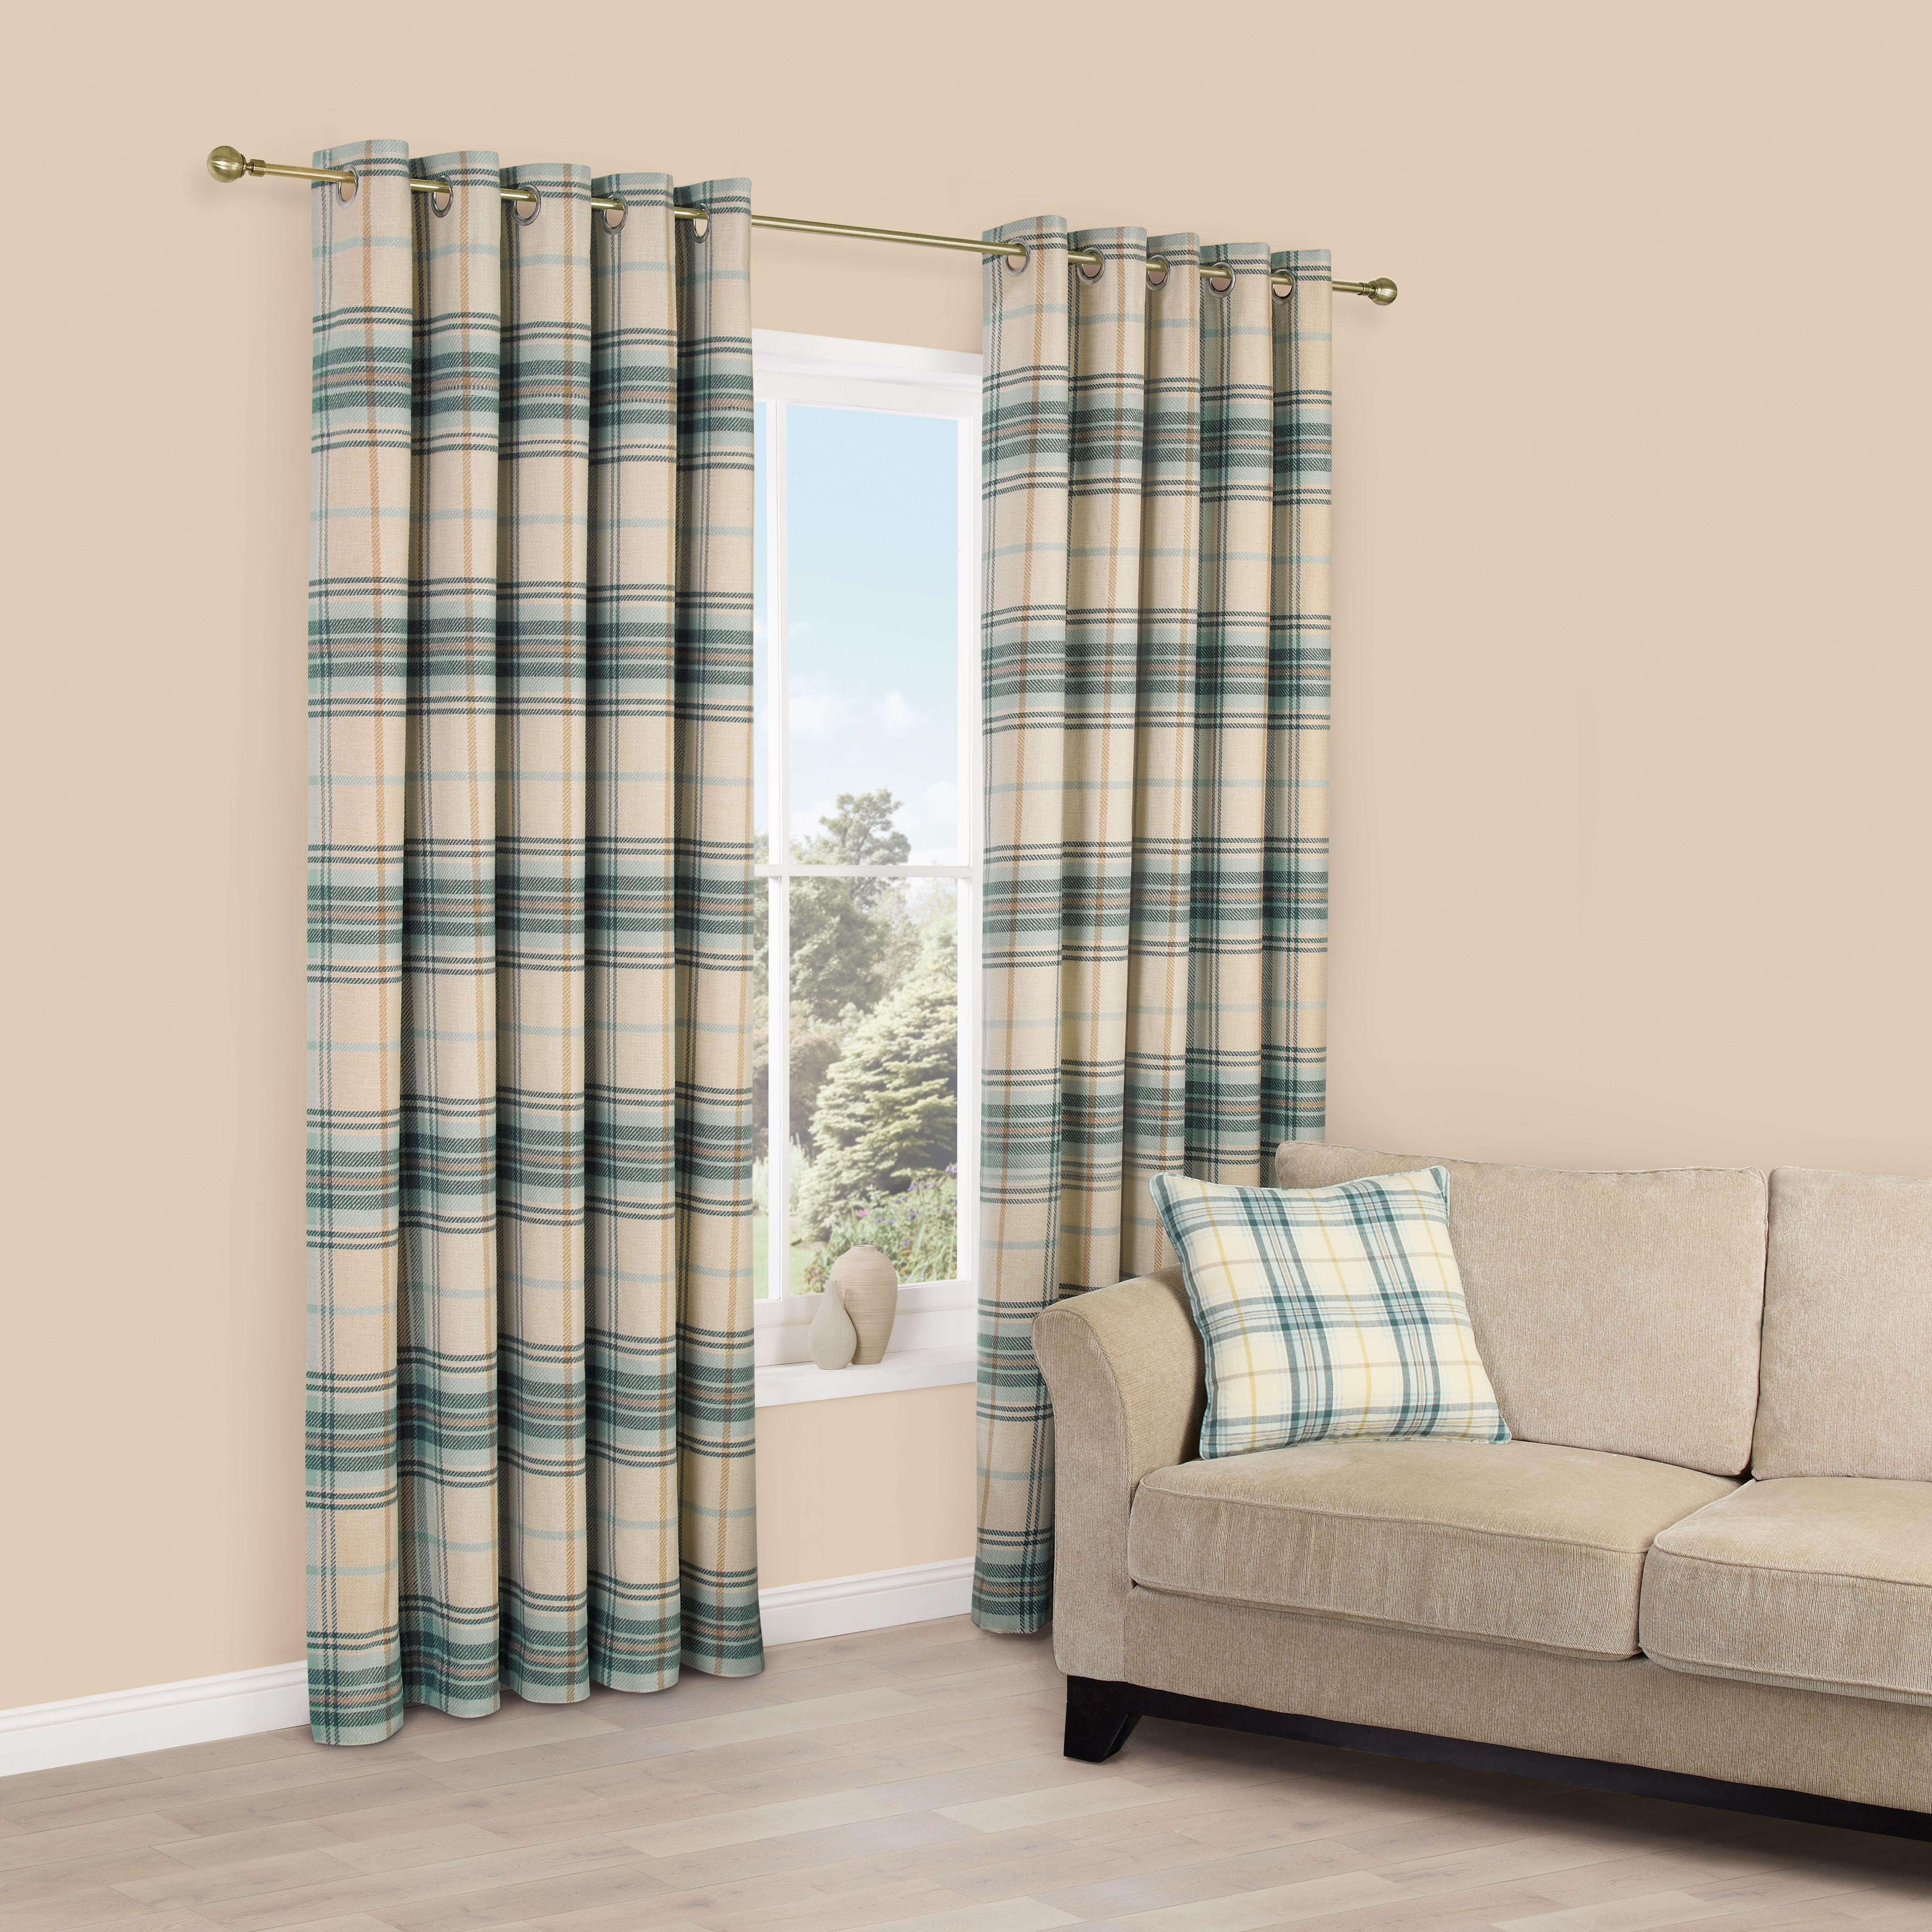 Lamego Duck Egg Cream Checked Brushed Eyelet Curtains W167cm L